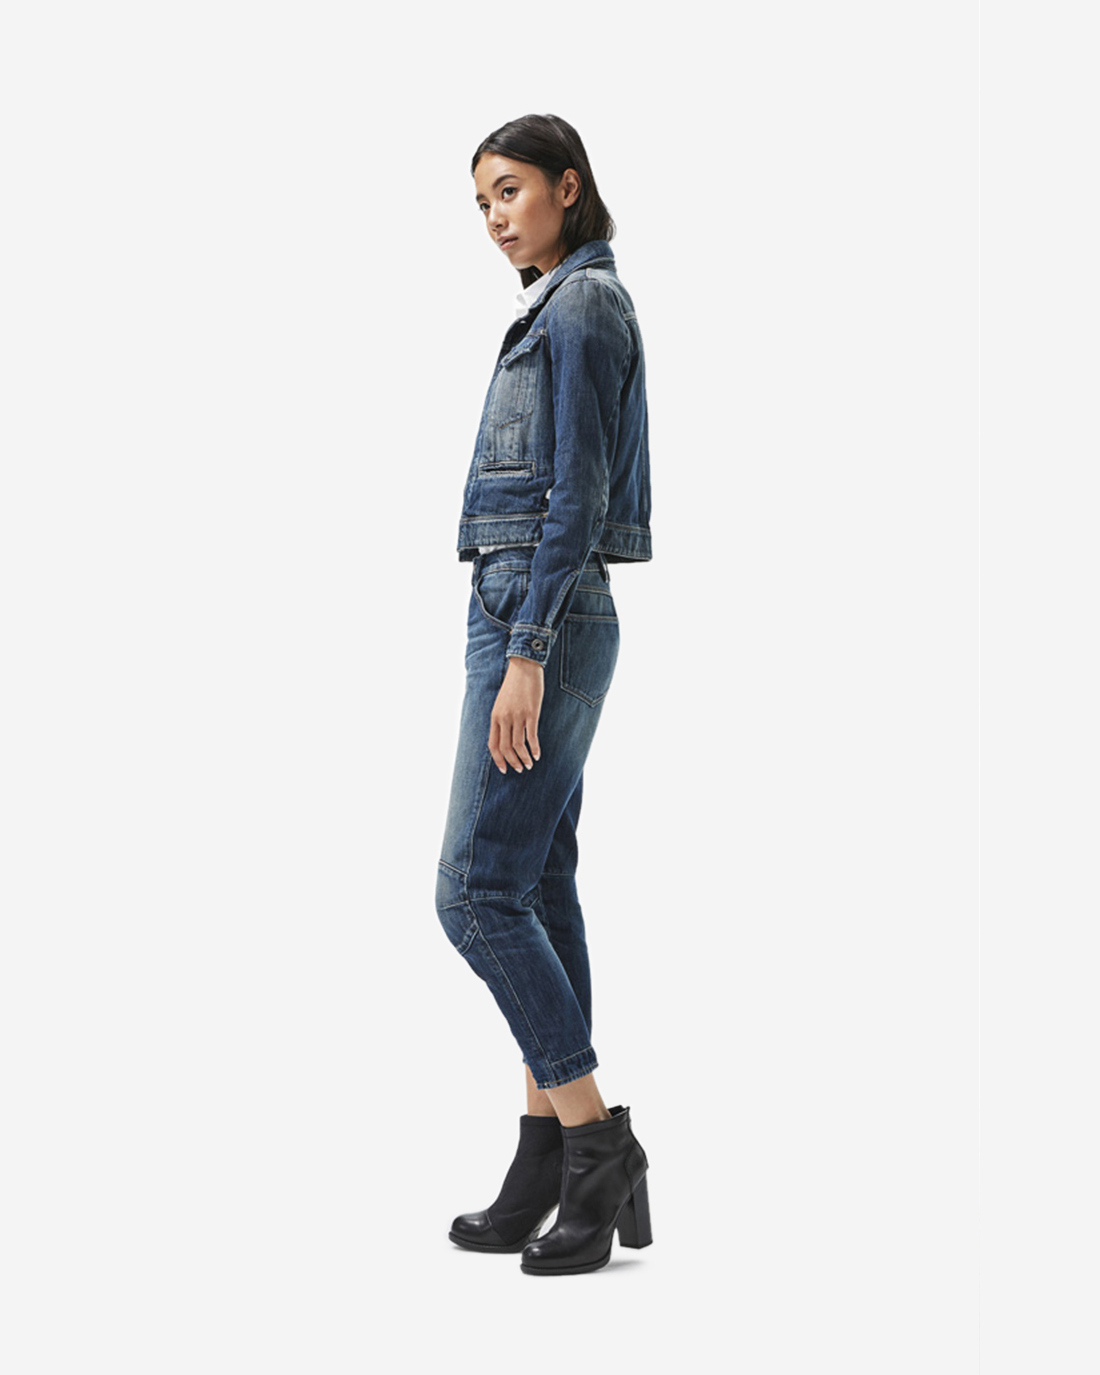 Most_Sustainable_Jeans_03